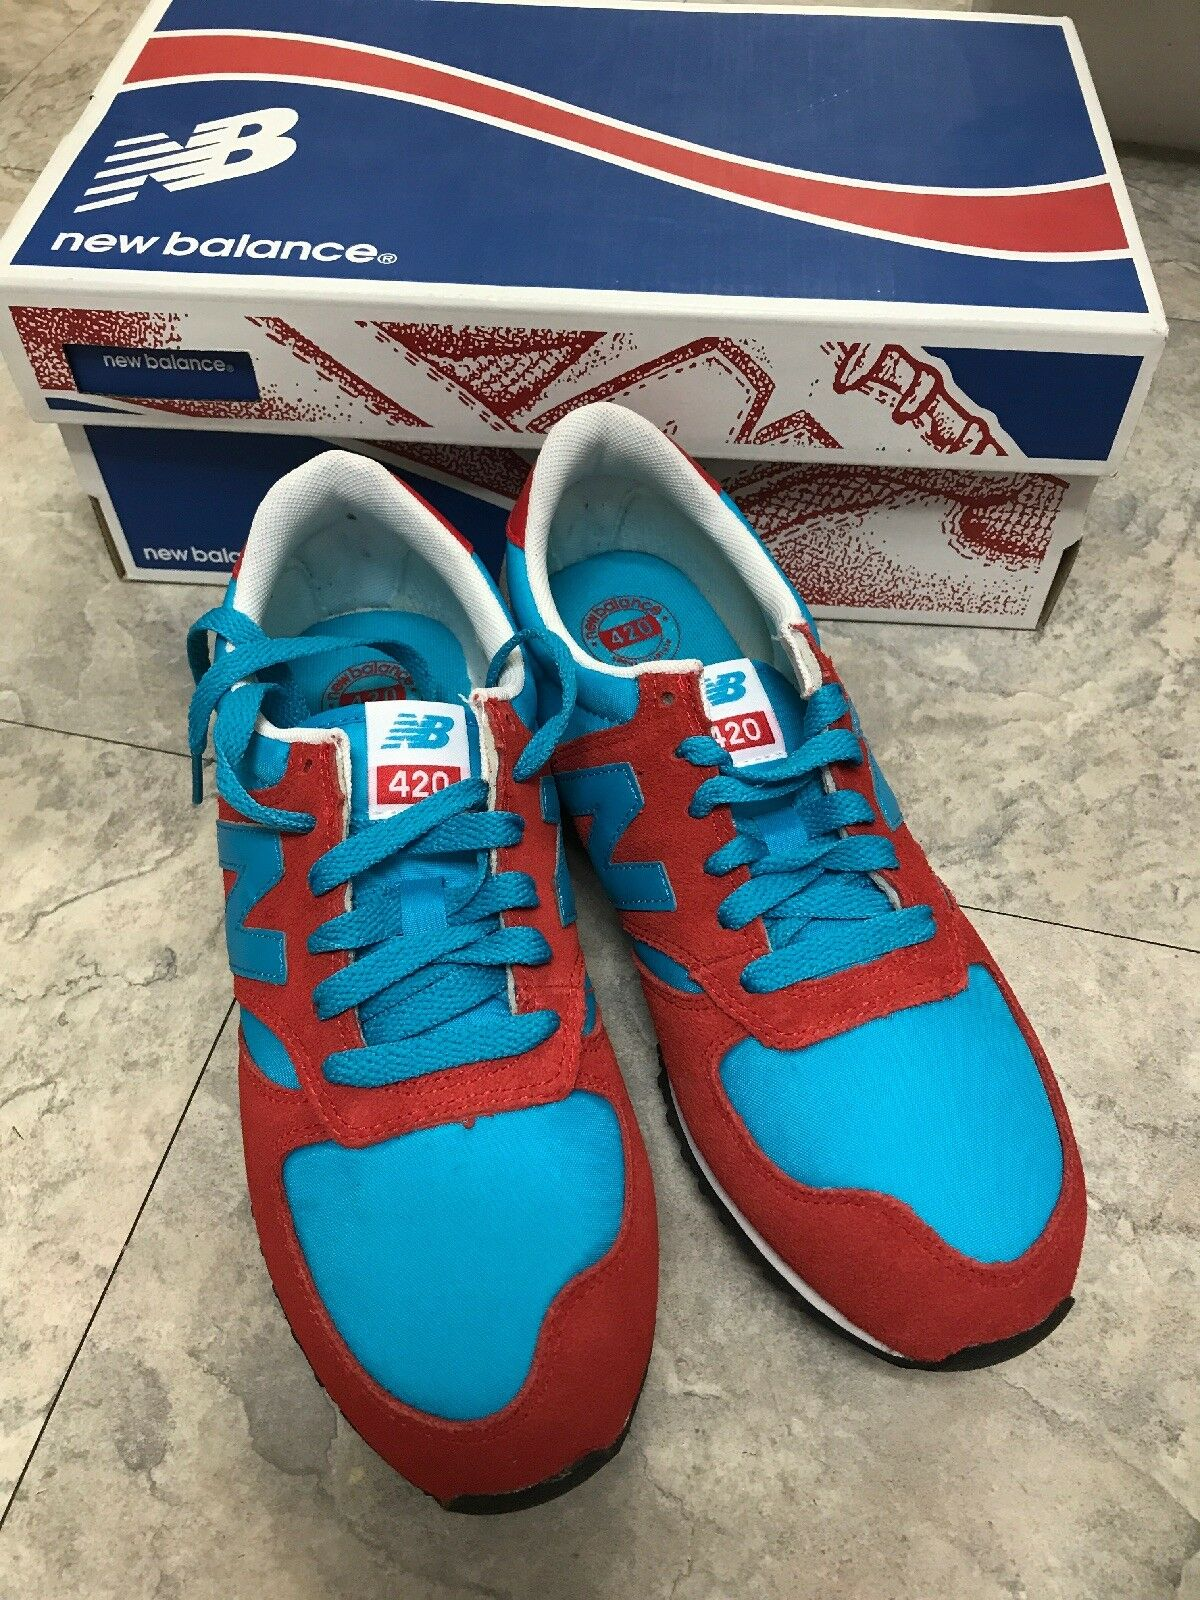 New Balance for J Crew  420 bluee and Red Sneakers Women's size 7M